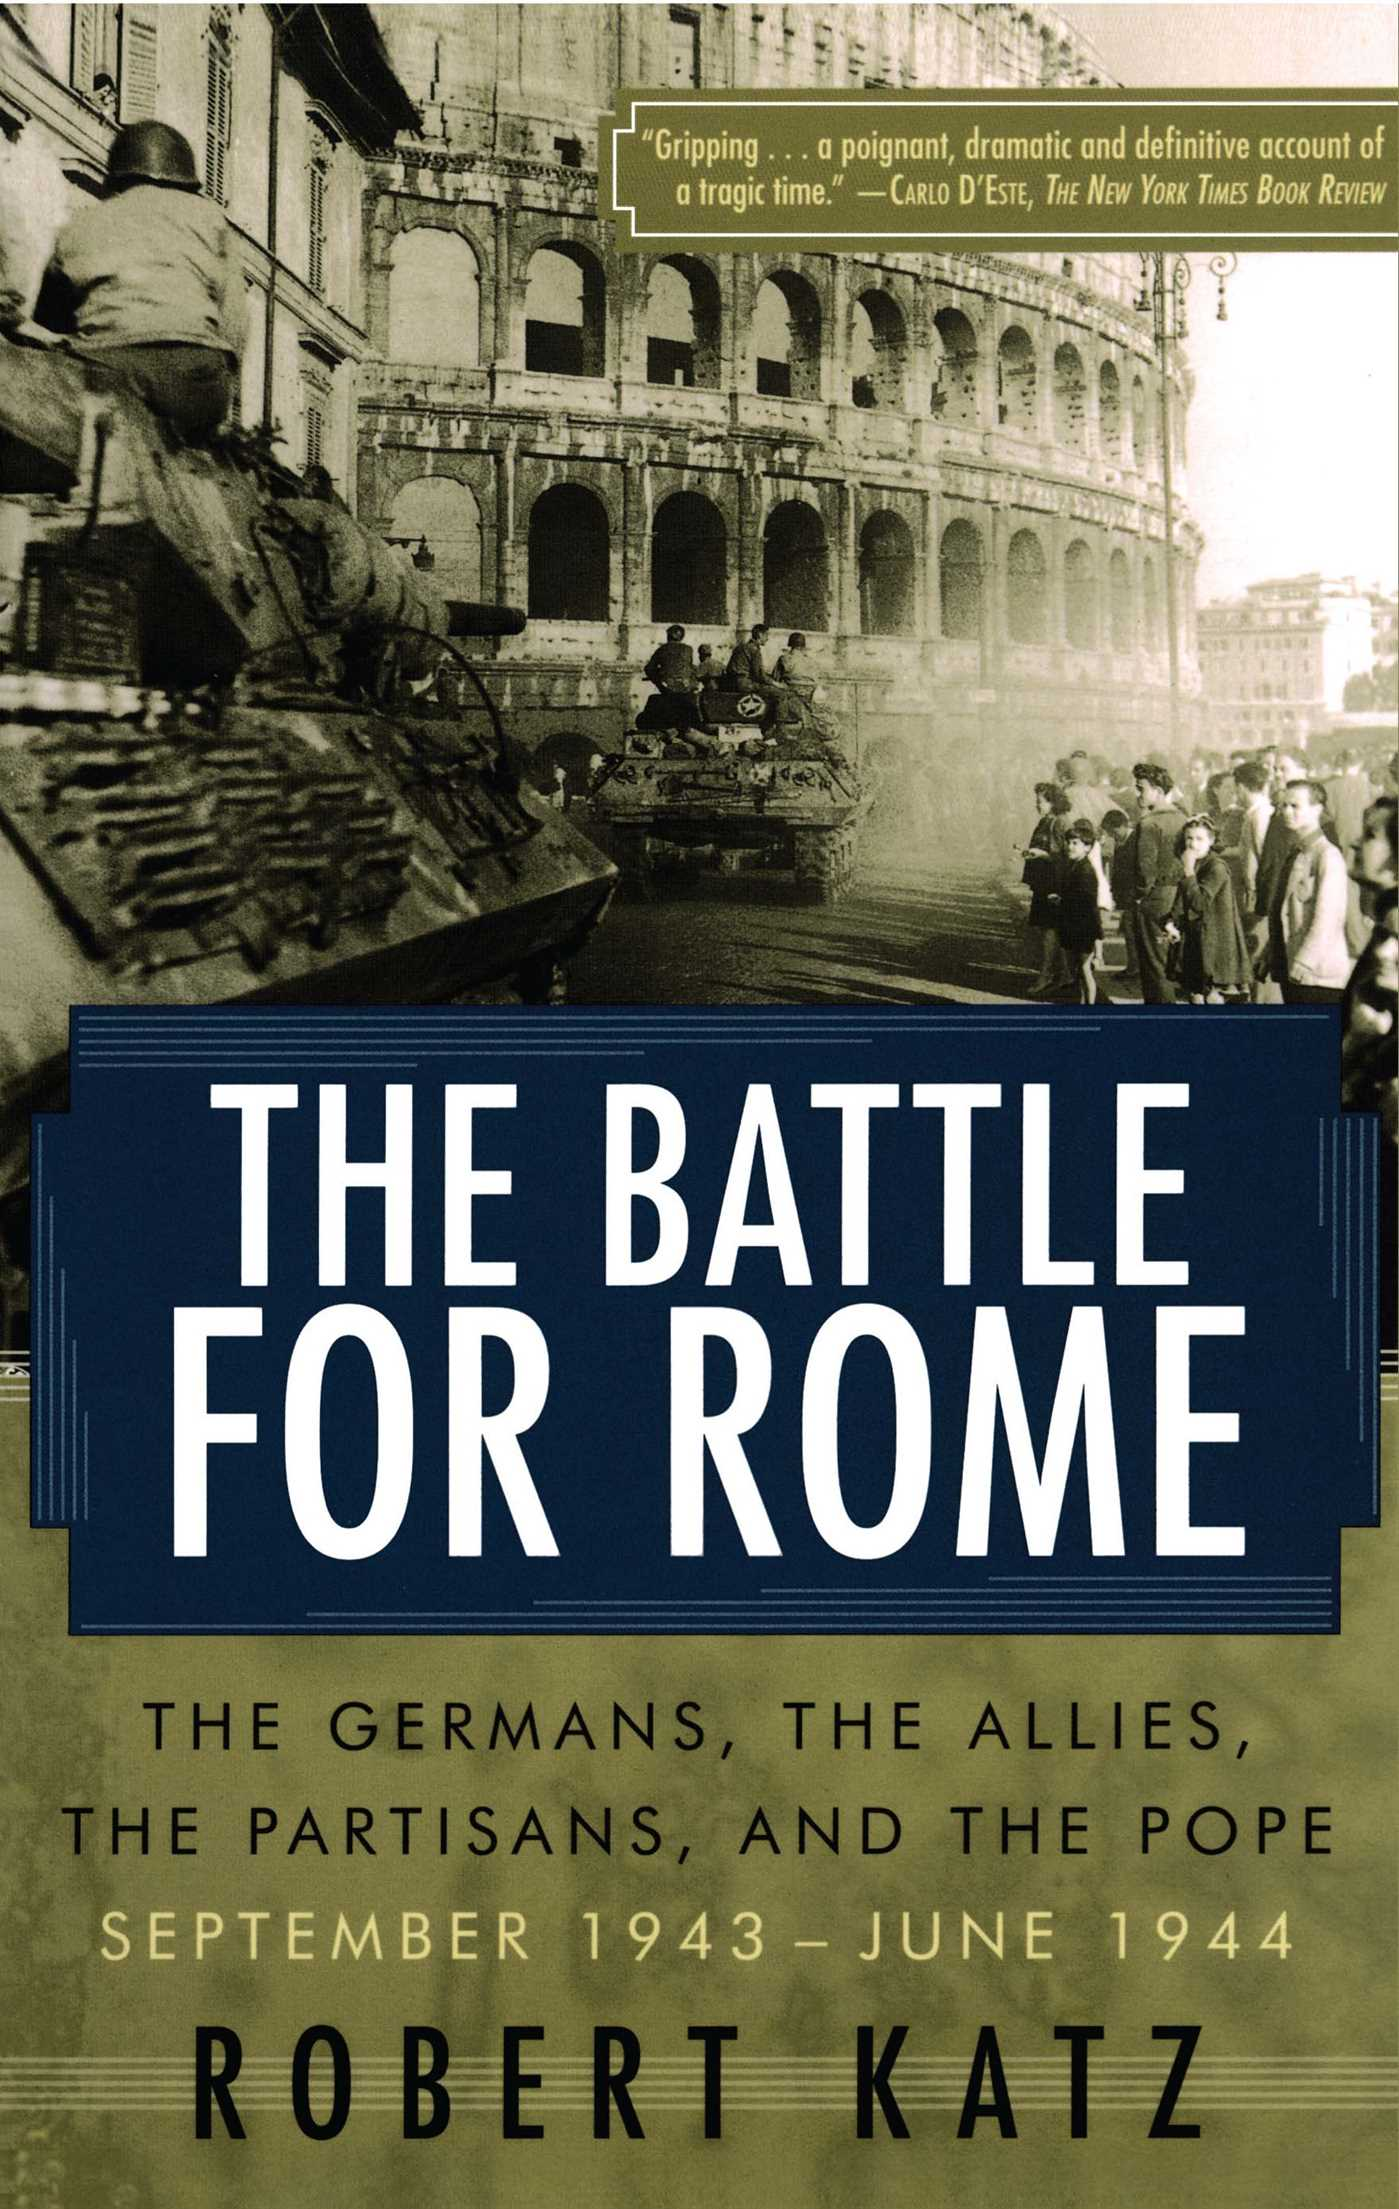 The battle for rome 9780743258081 hr